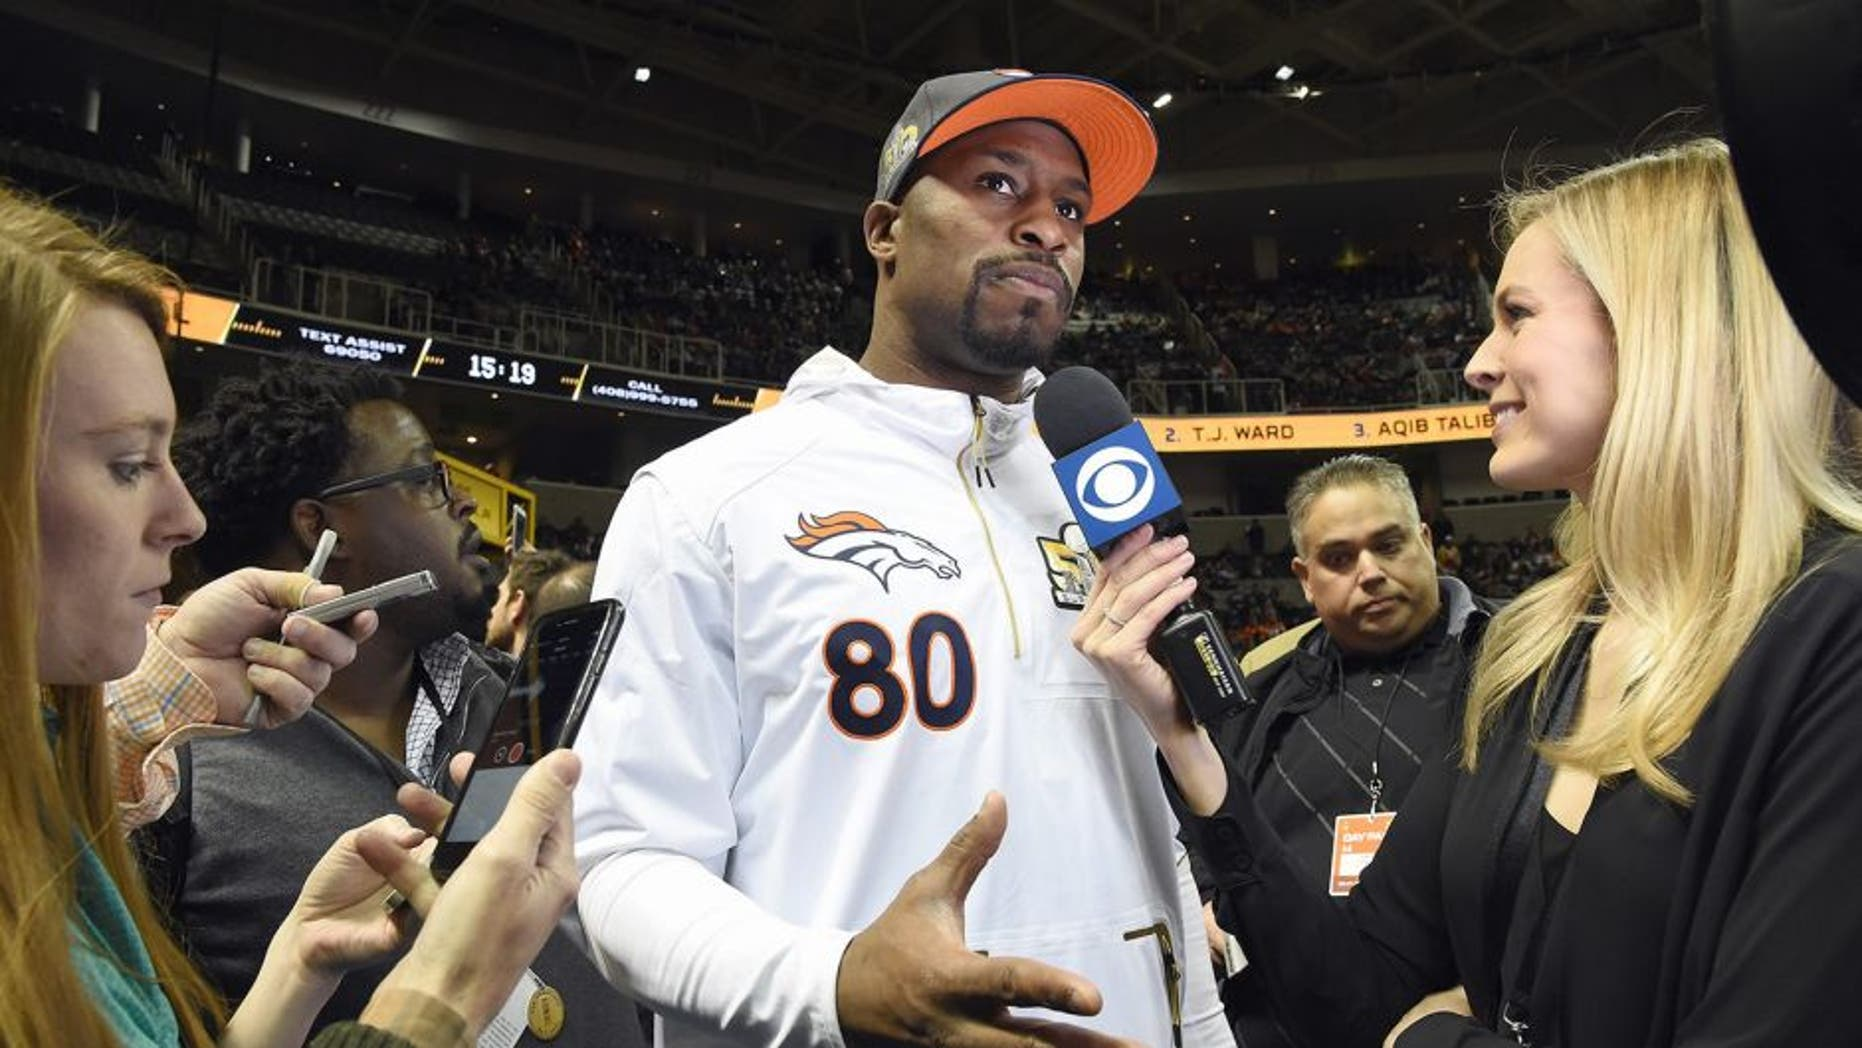 SAN JOSE, CA - FEBRUARY 01: Vernon Davis #80 of the Denver Broncos addresses the media at Super Bowl Opening Night Fueled by Gatorade at SAP Center on February 1, 2016 in San Jose, California. (Photo by Thearon W. Henderson/Getty Images)